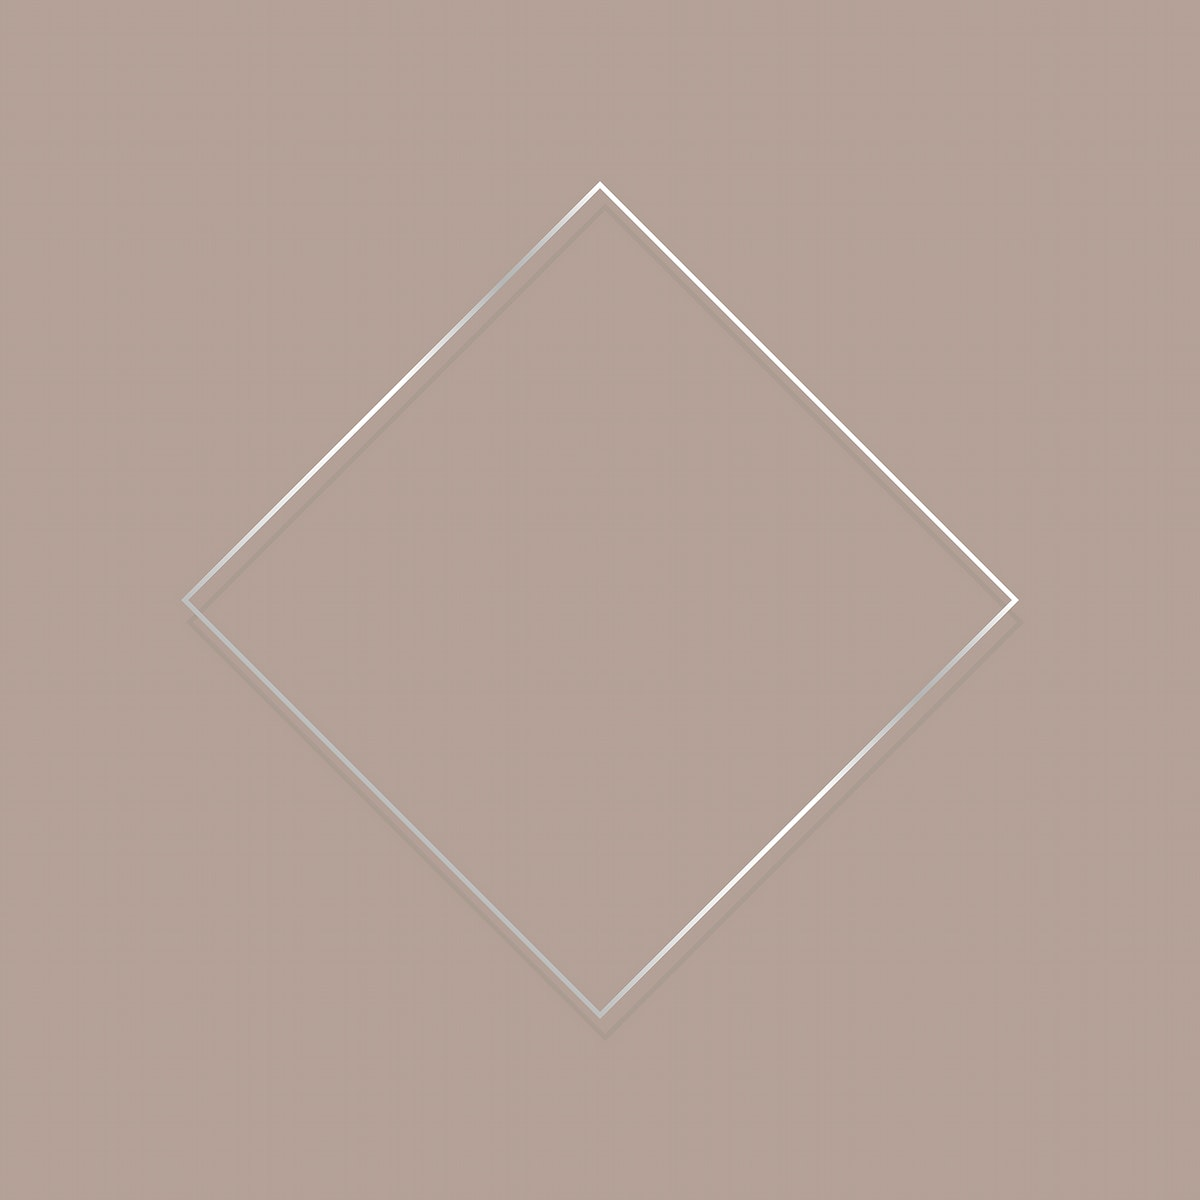 Rhombus silver frame on a blank background vector